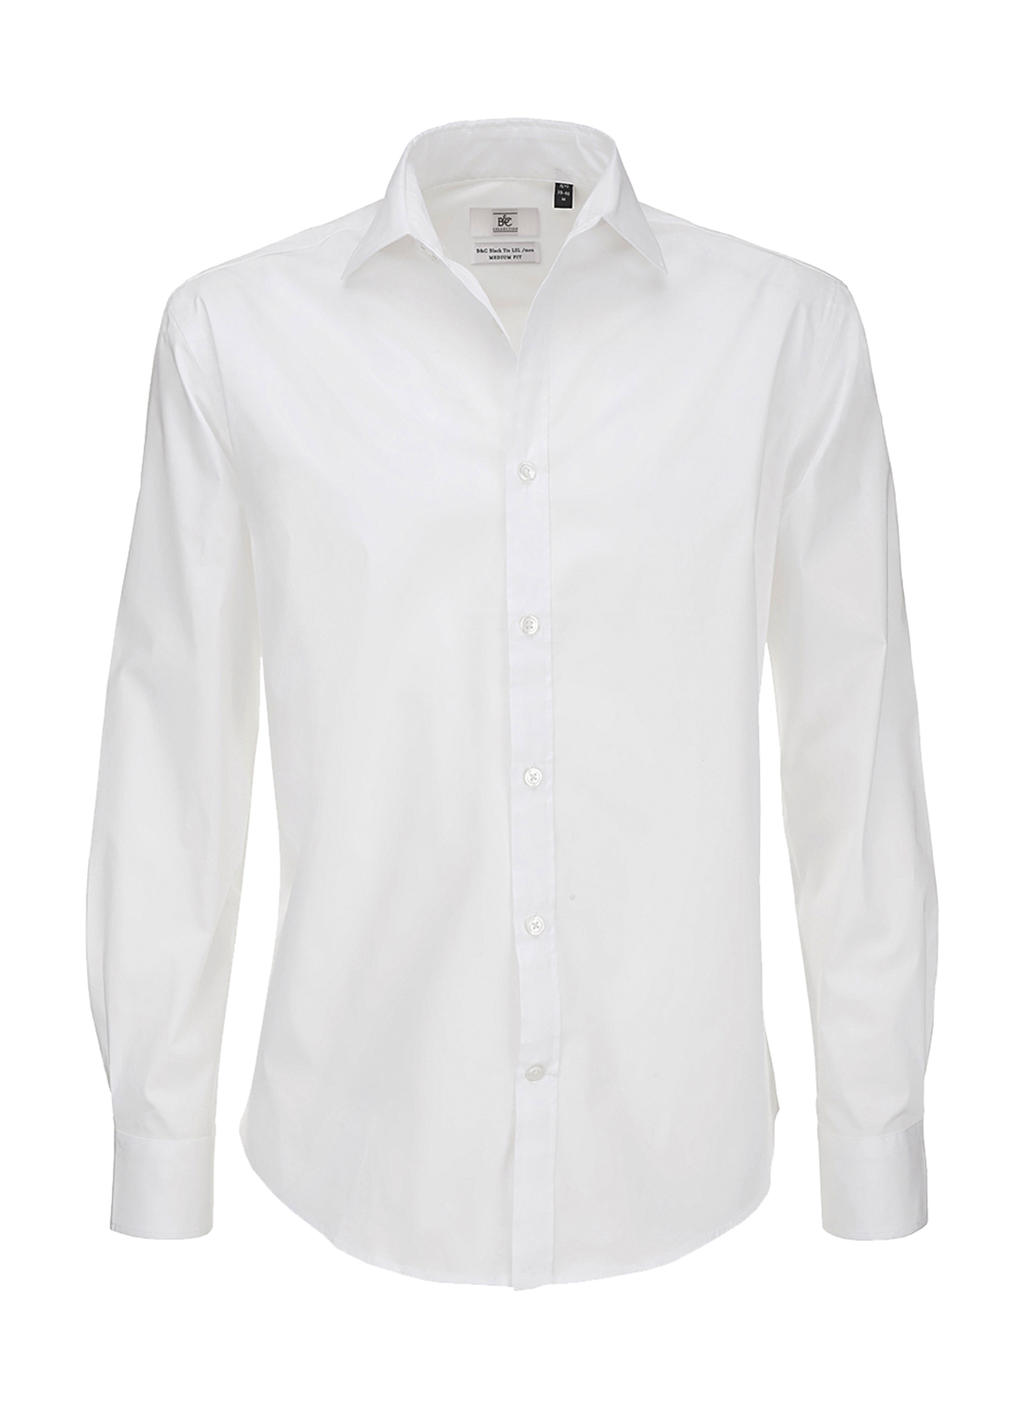 Black Tie LSL/men Shirt